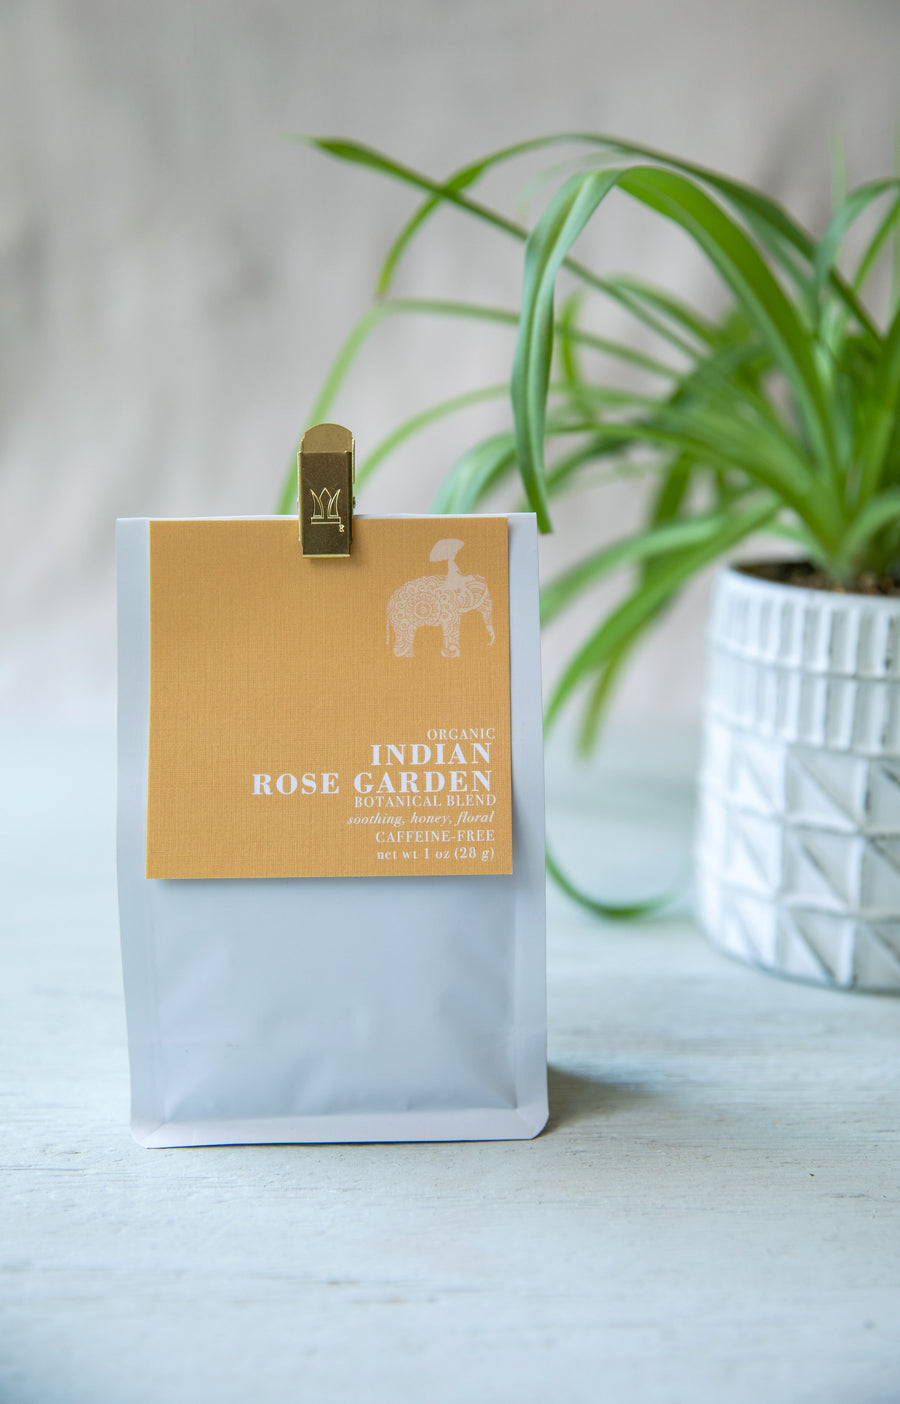 Indian Rose Garden Botanical Blend